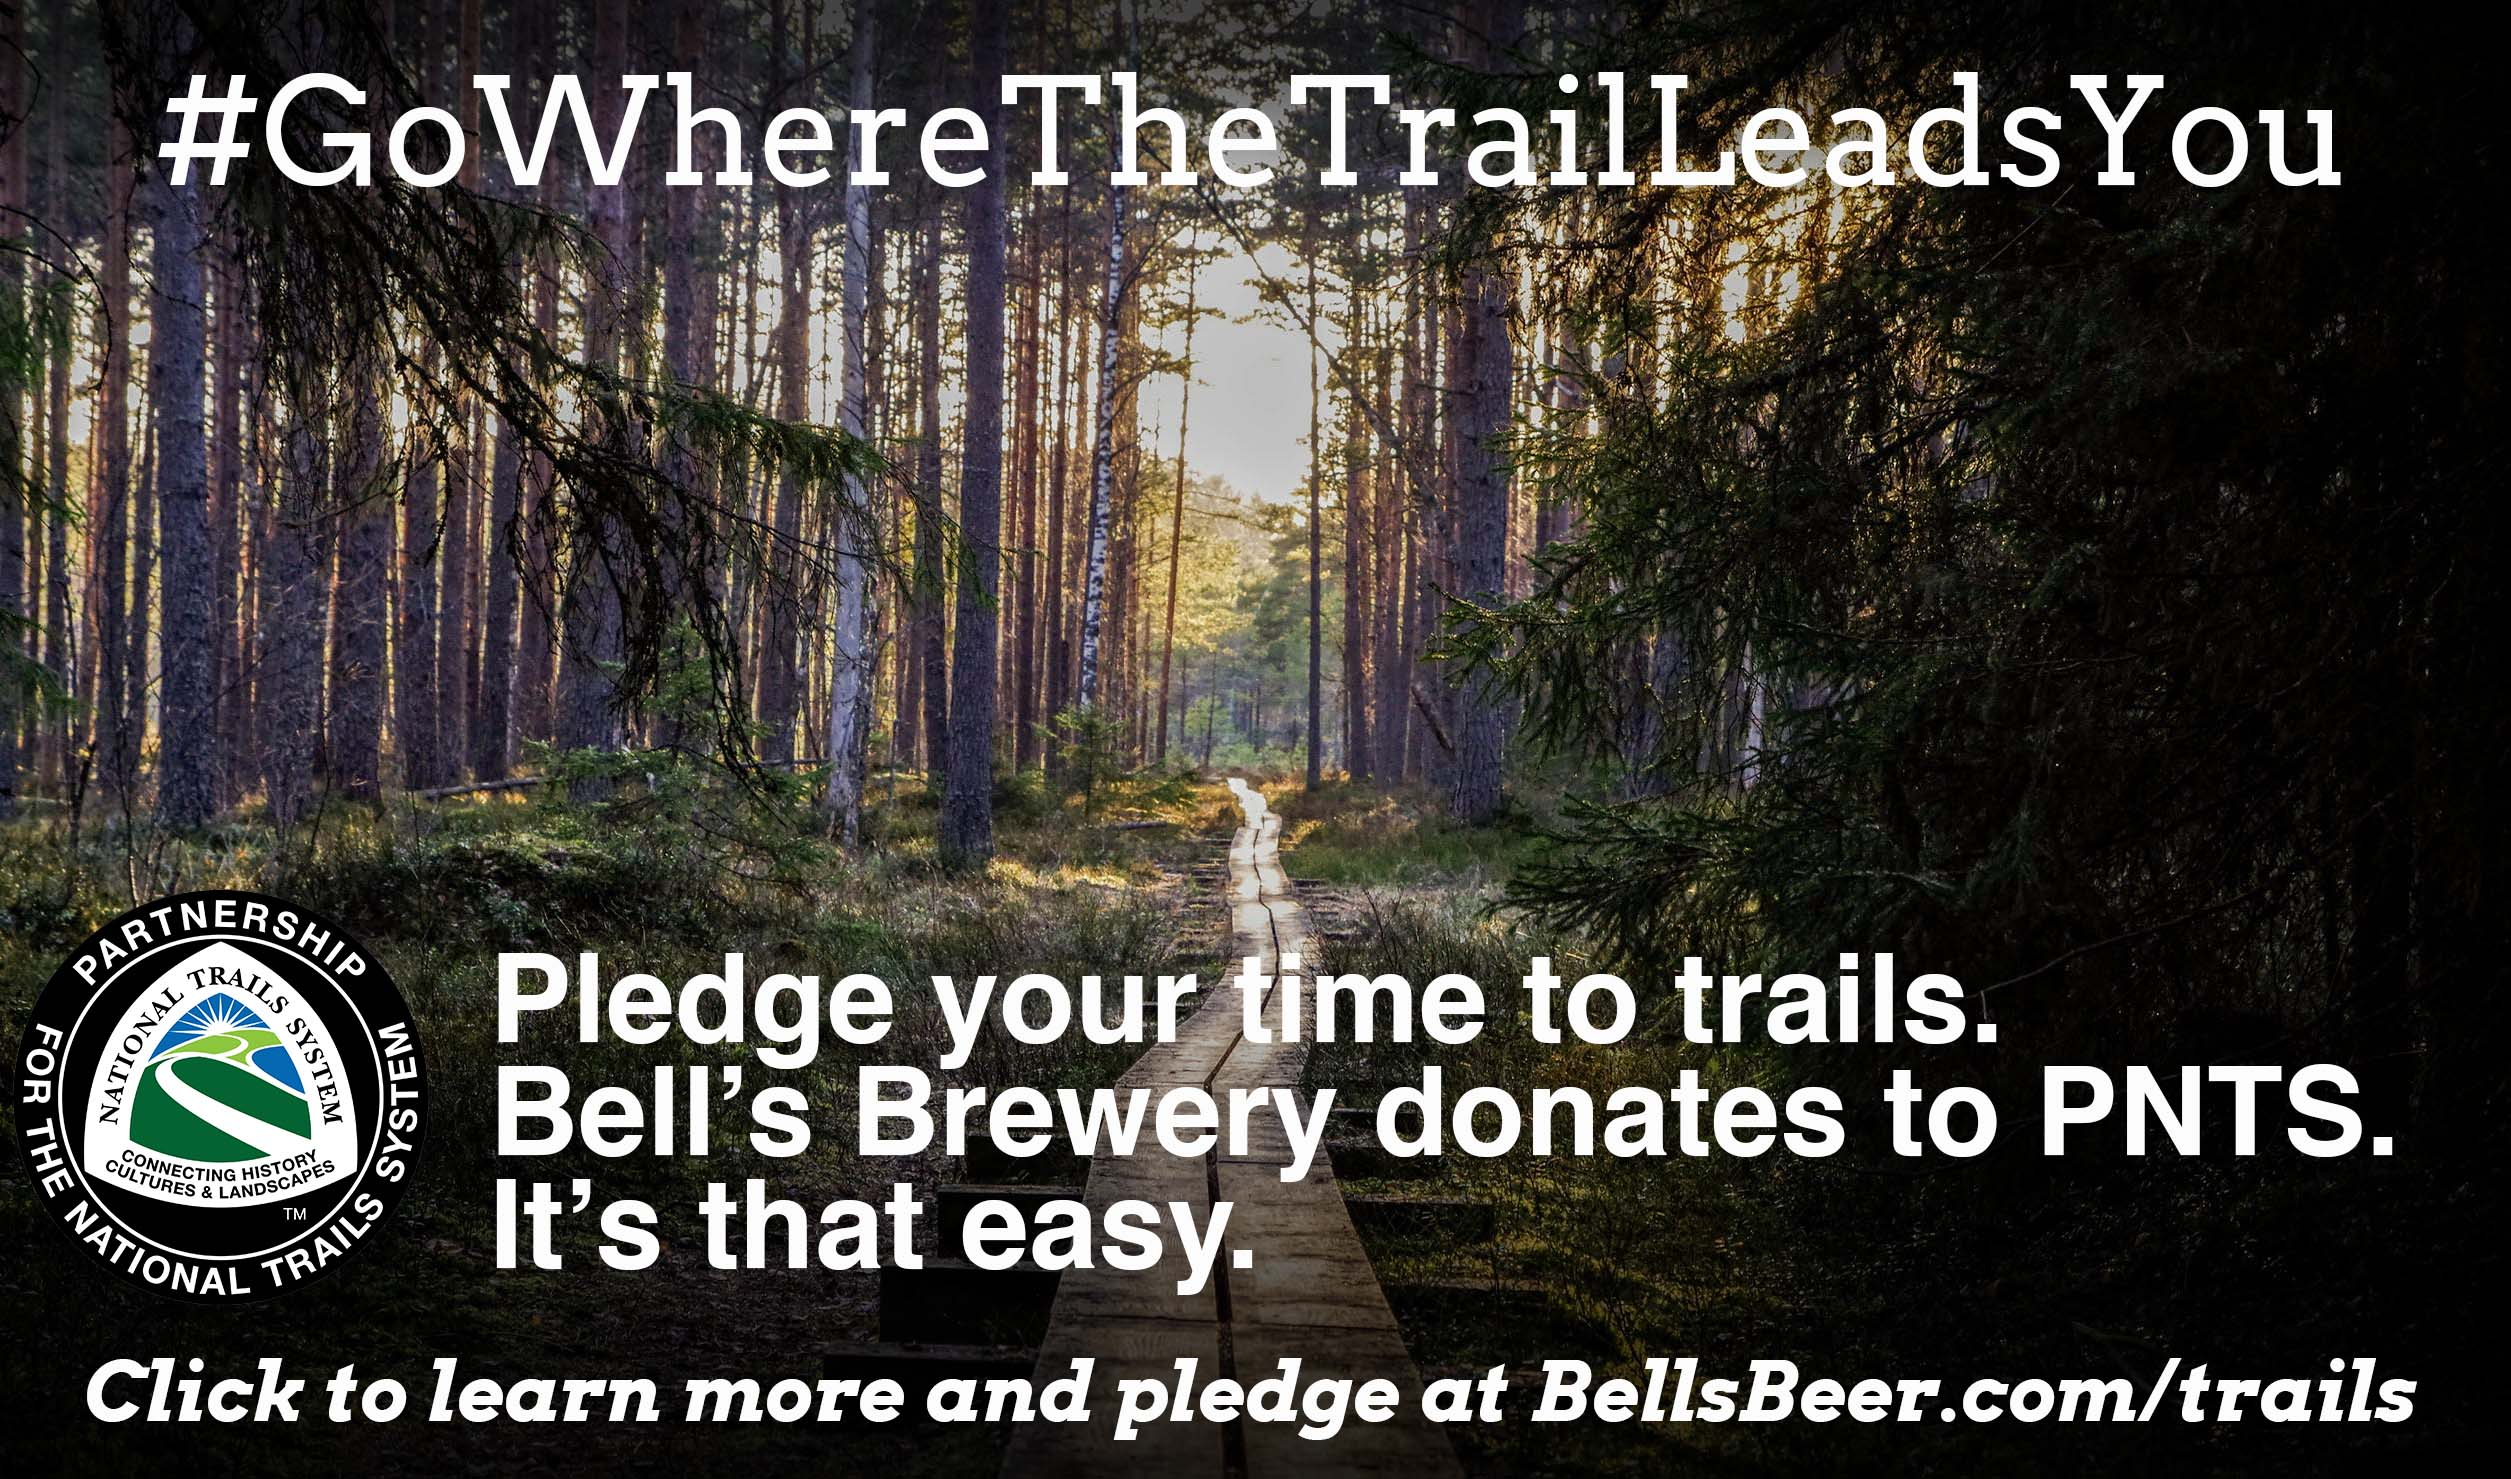 Pledge to support trails and Bell's Brewery will make a donation to PNTS. Click to take the pledge at BellsBeer.com/trails